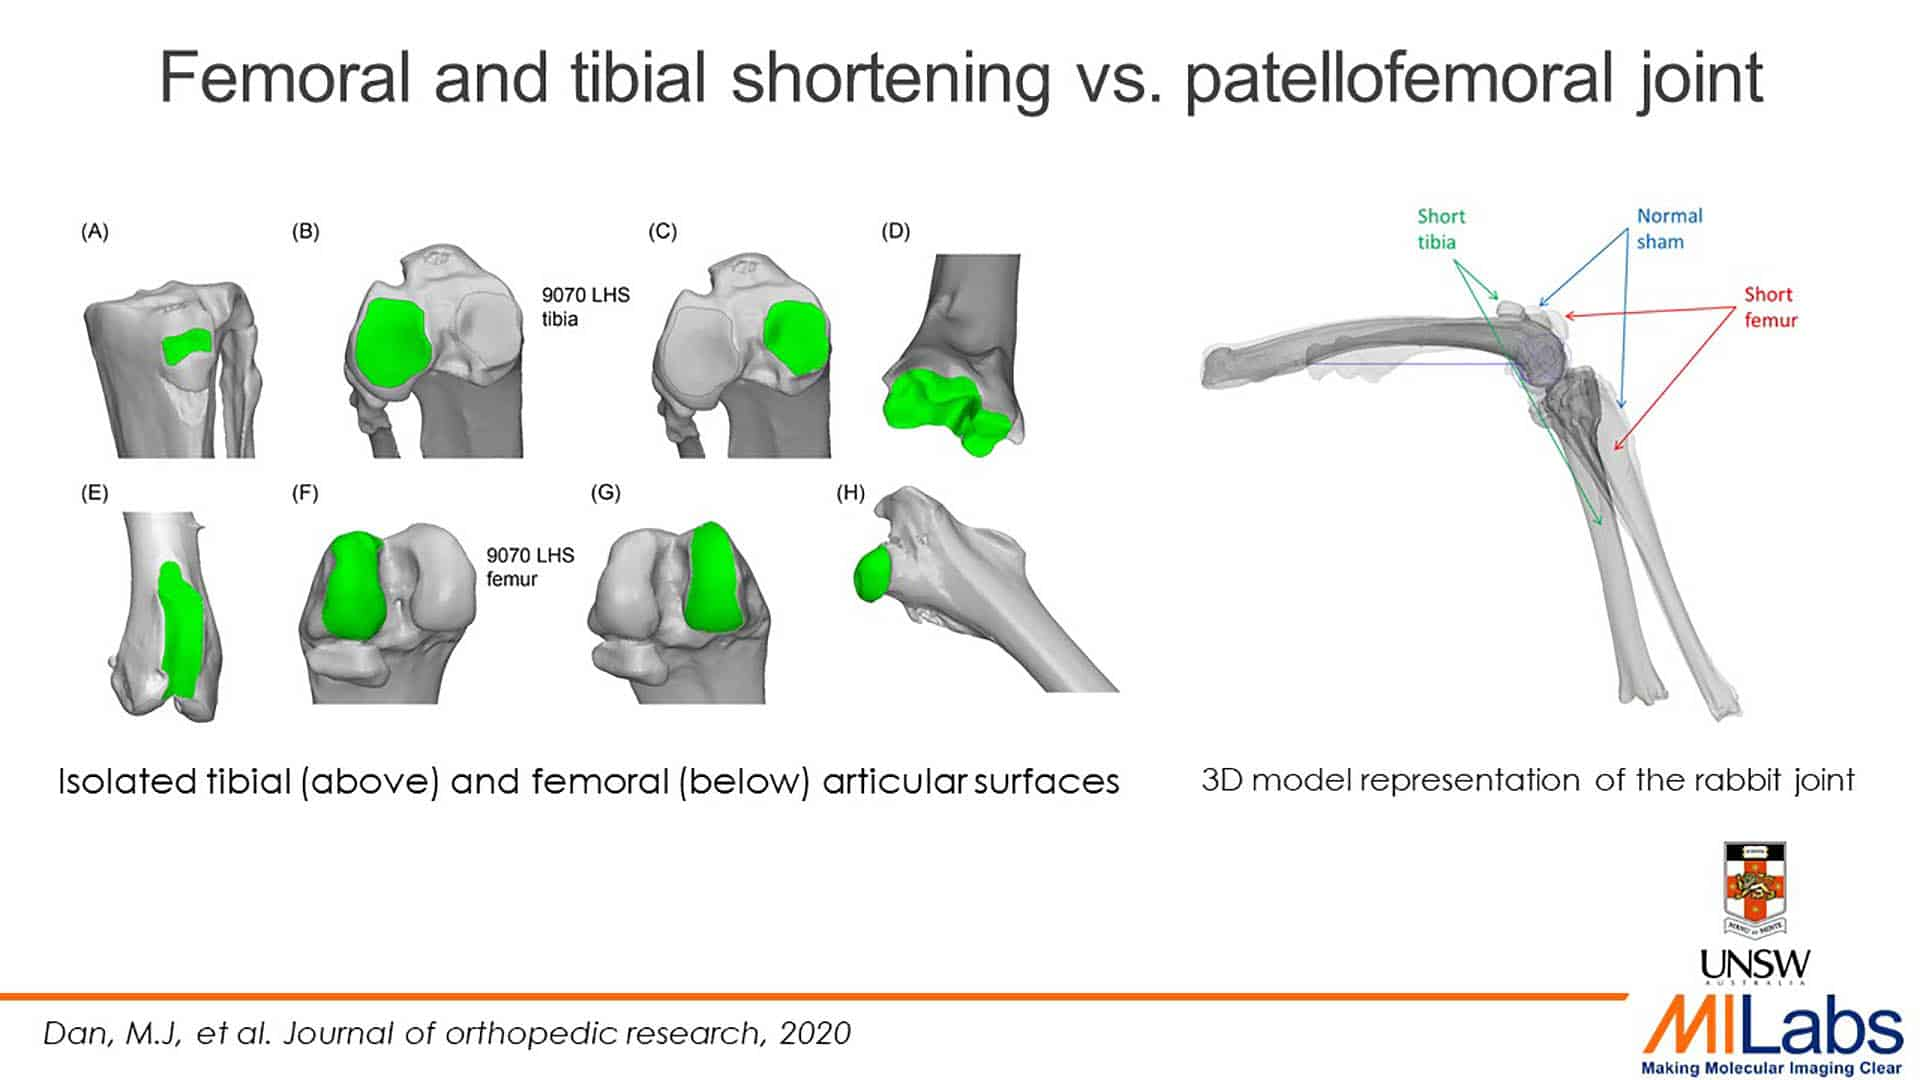 femoral and tibial shortening patellofemoral joint